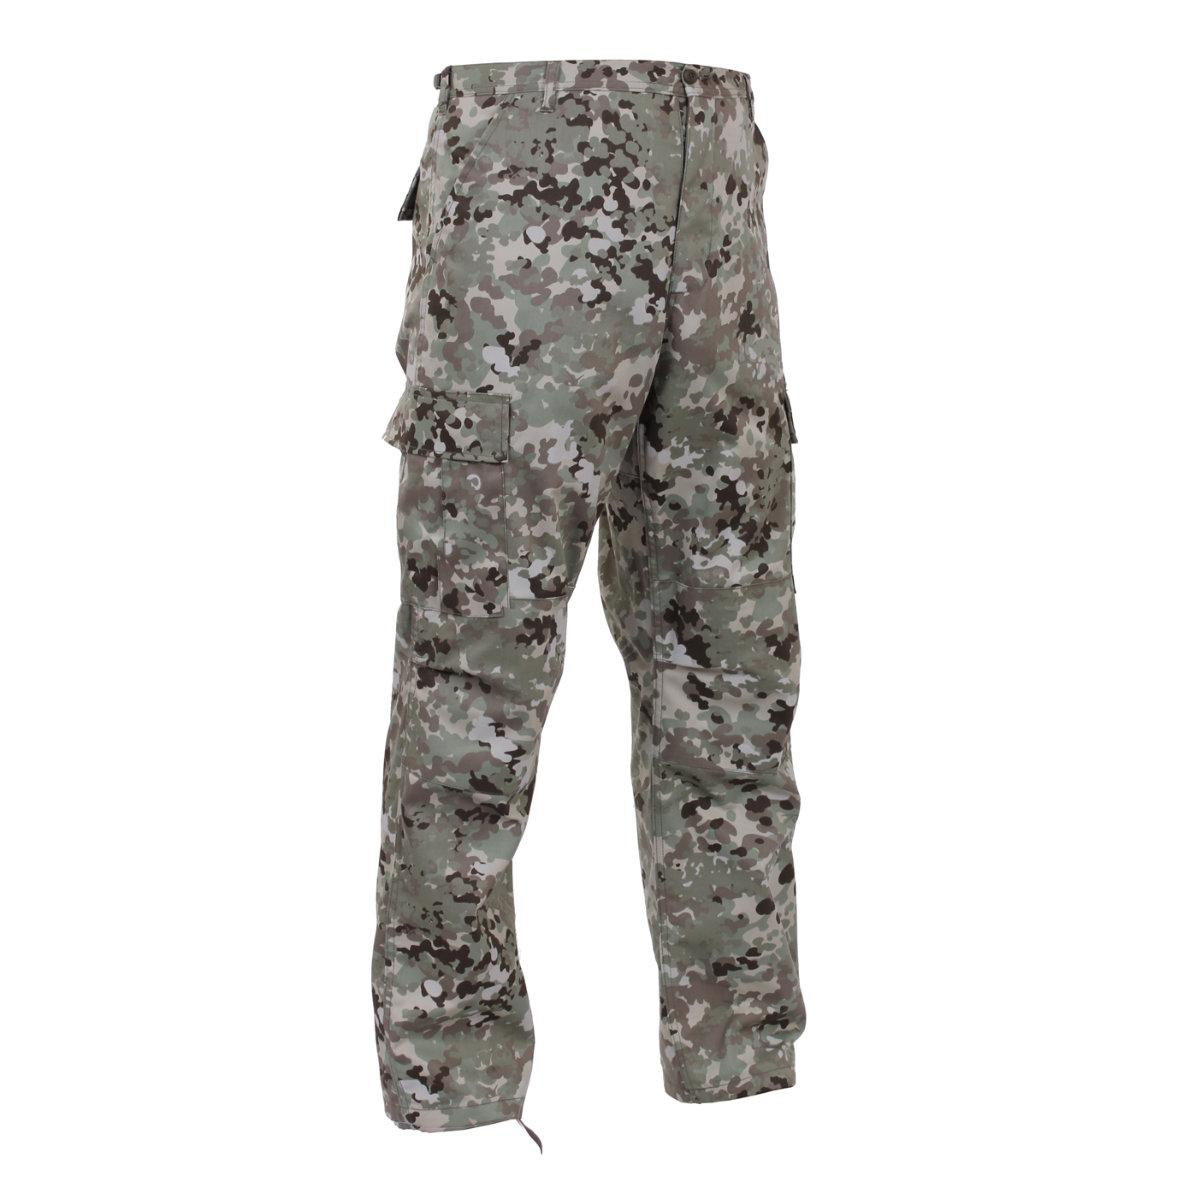 Total Terrain Camo BDU Pants, Military Fatigues